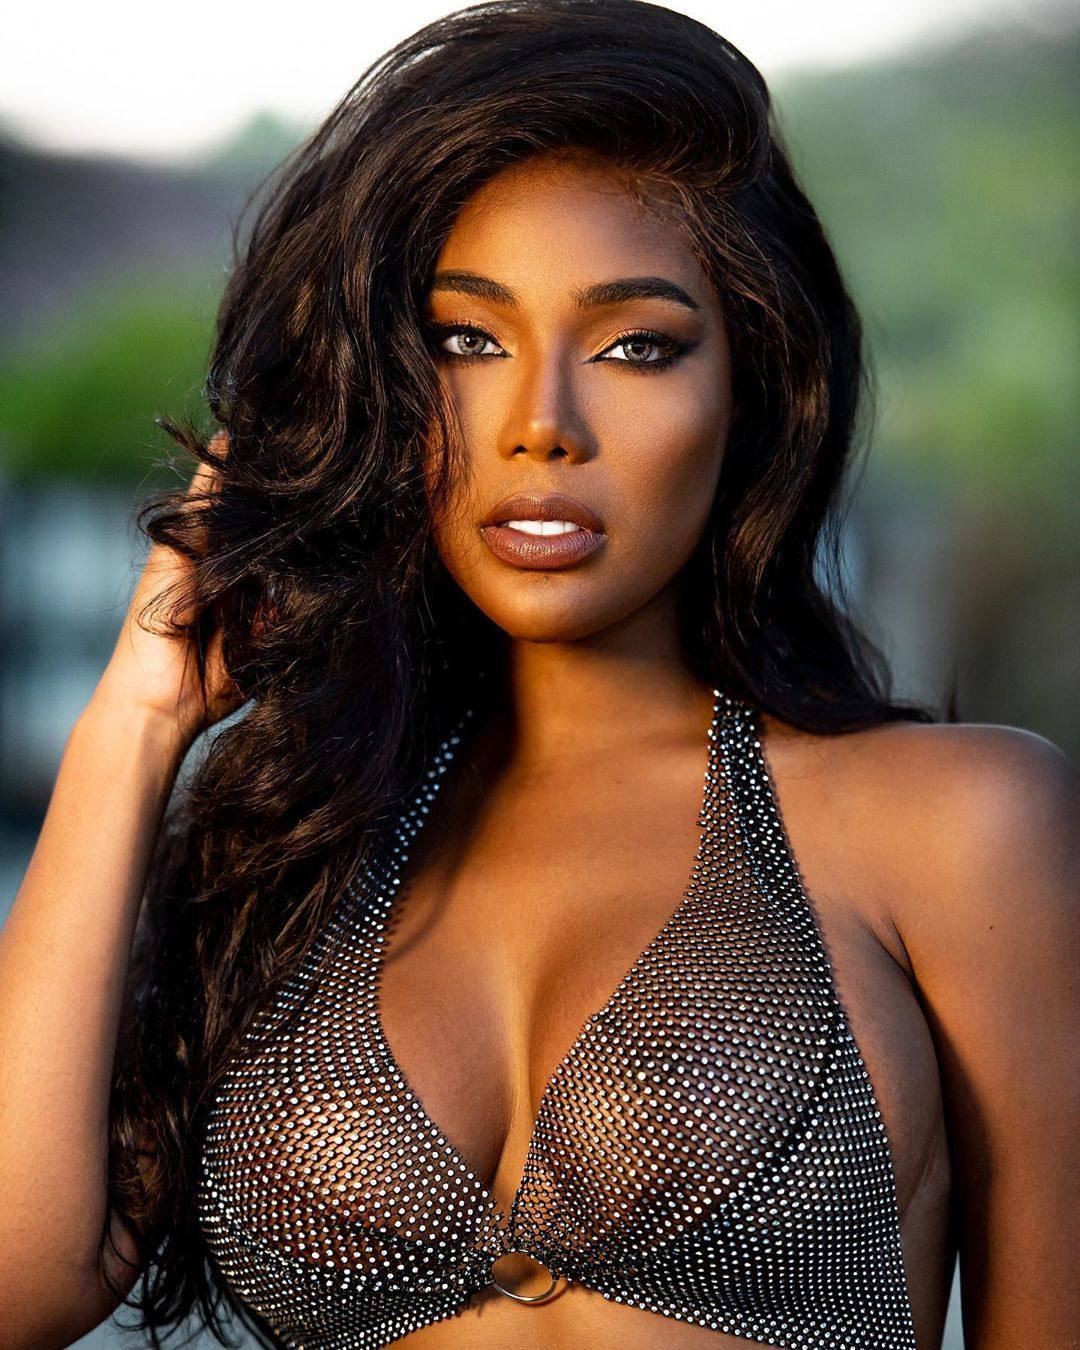 Monifa Jansen – Beautiful Boobs And Ass In Hot Instagram Pictures 0013